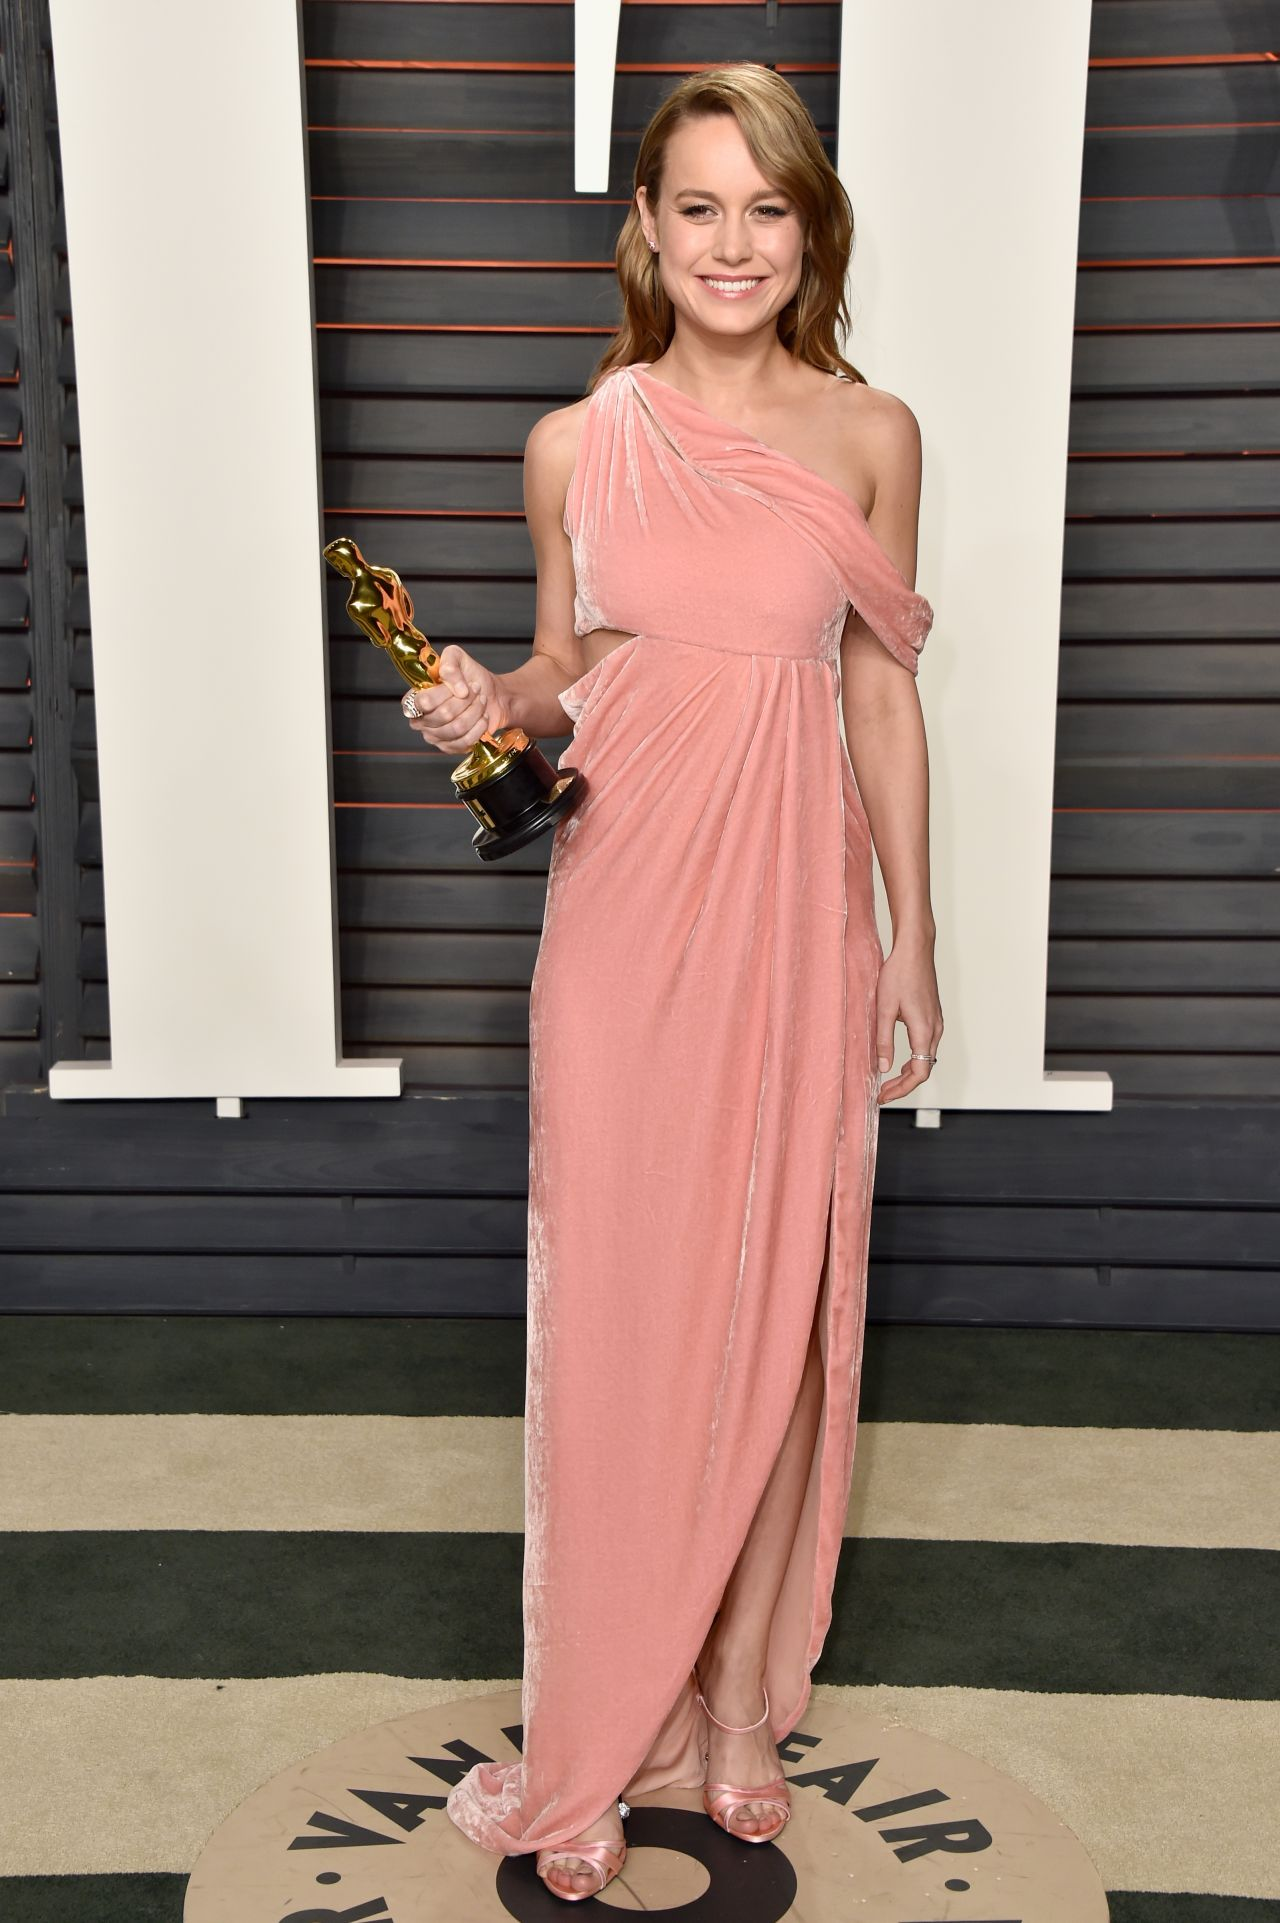 brie-larson-2016-vanity-fair-oscar-party-in-beverly-hills-ca-5